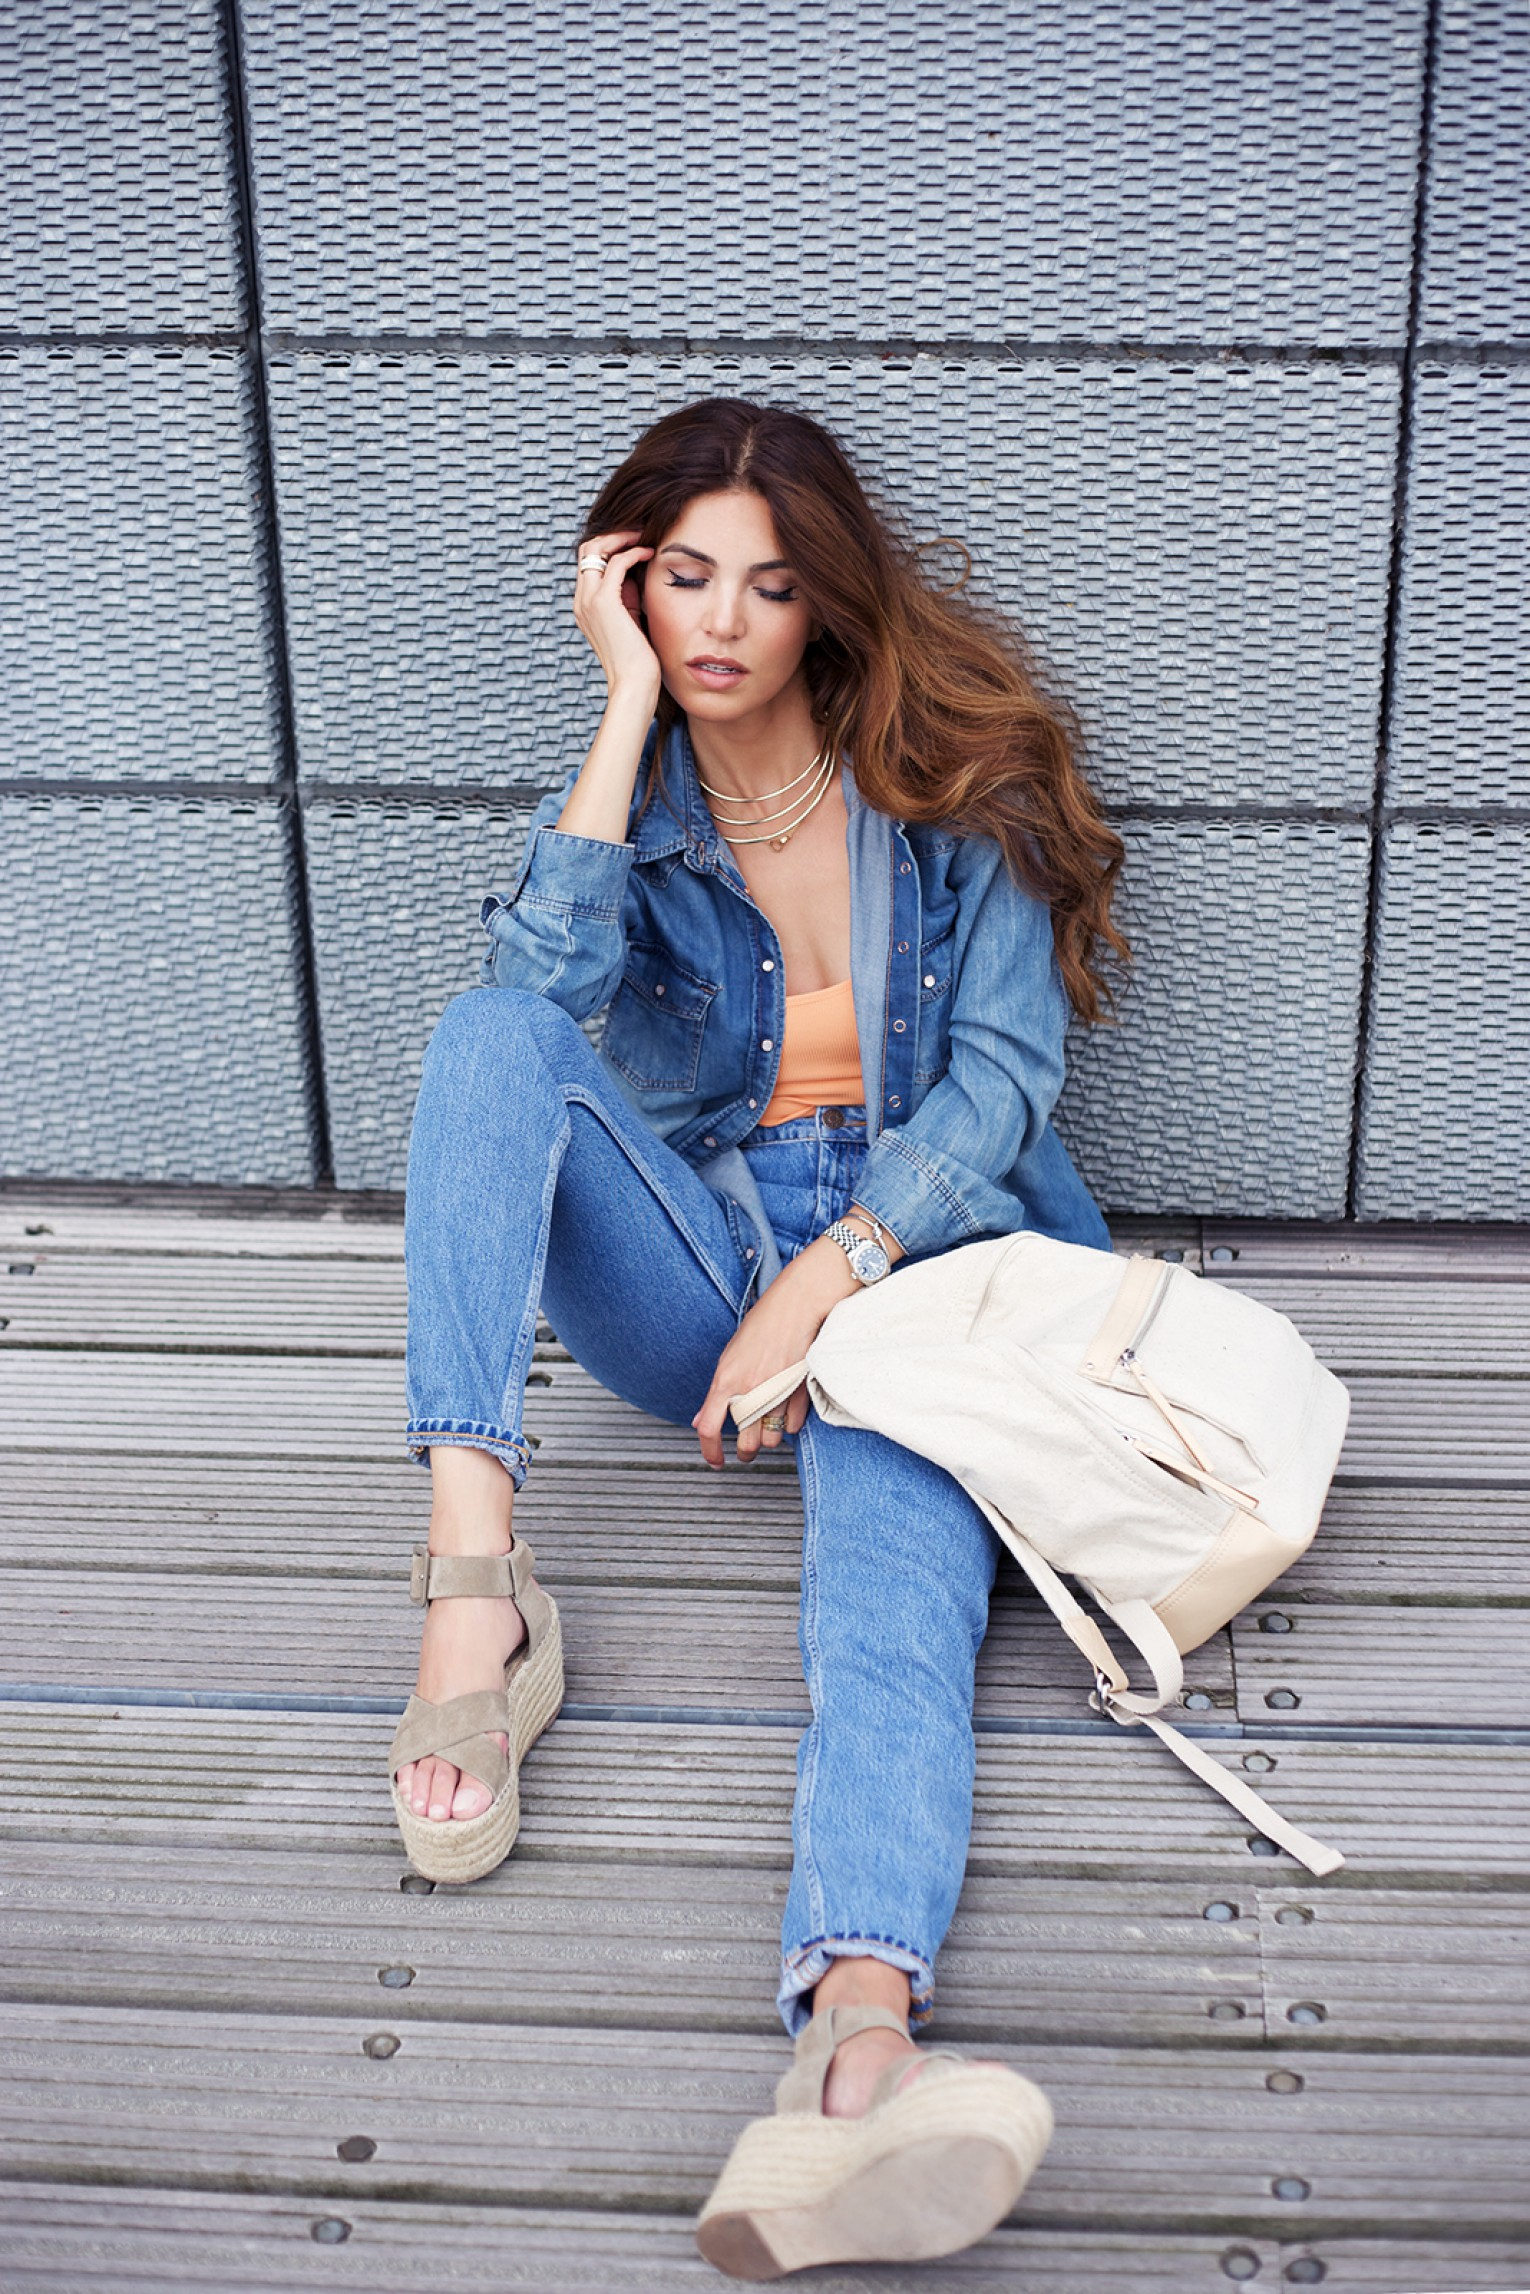 Negin Mirsalehi - continuation of the seventies trend